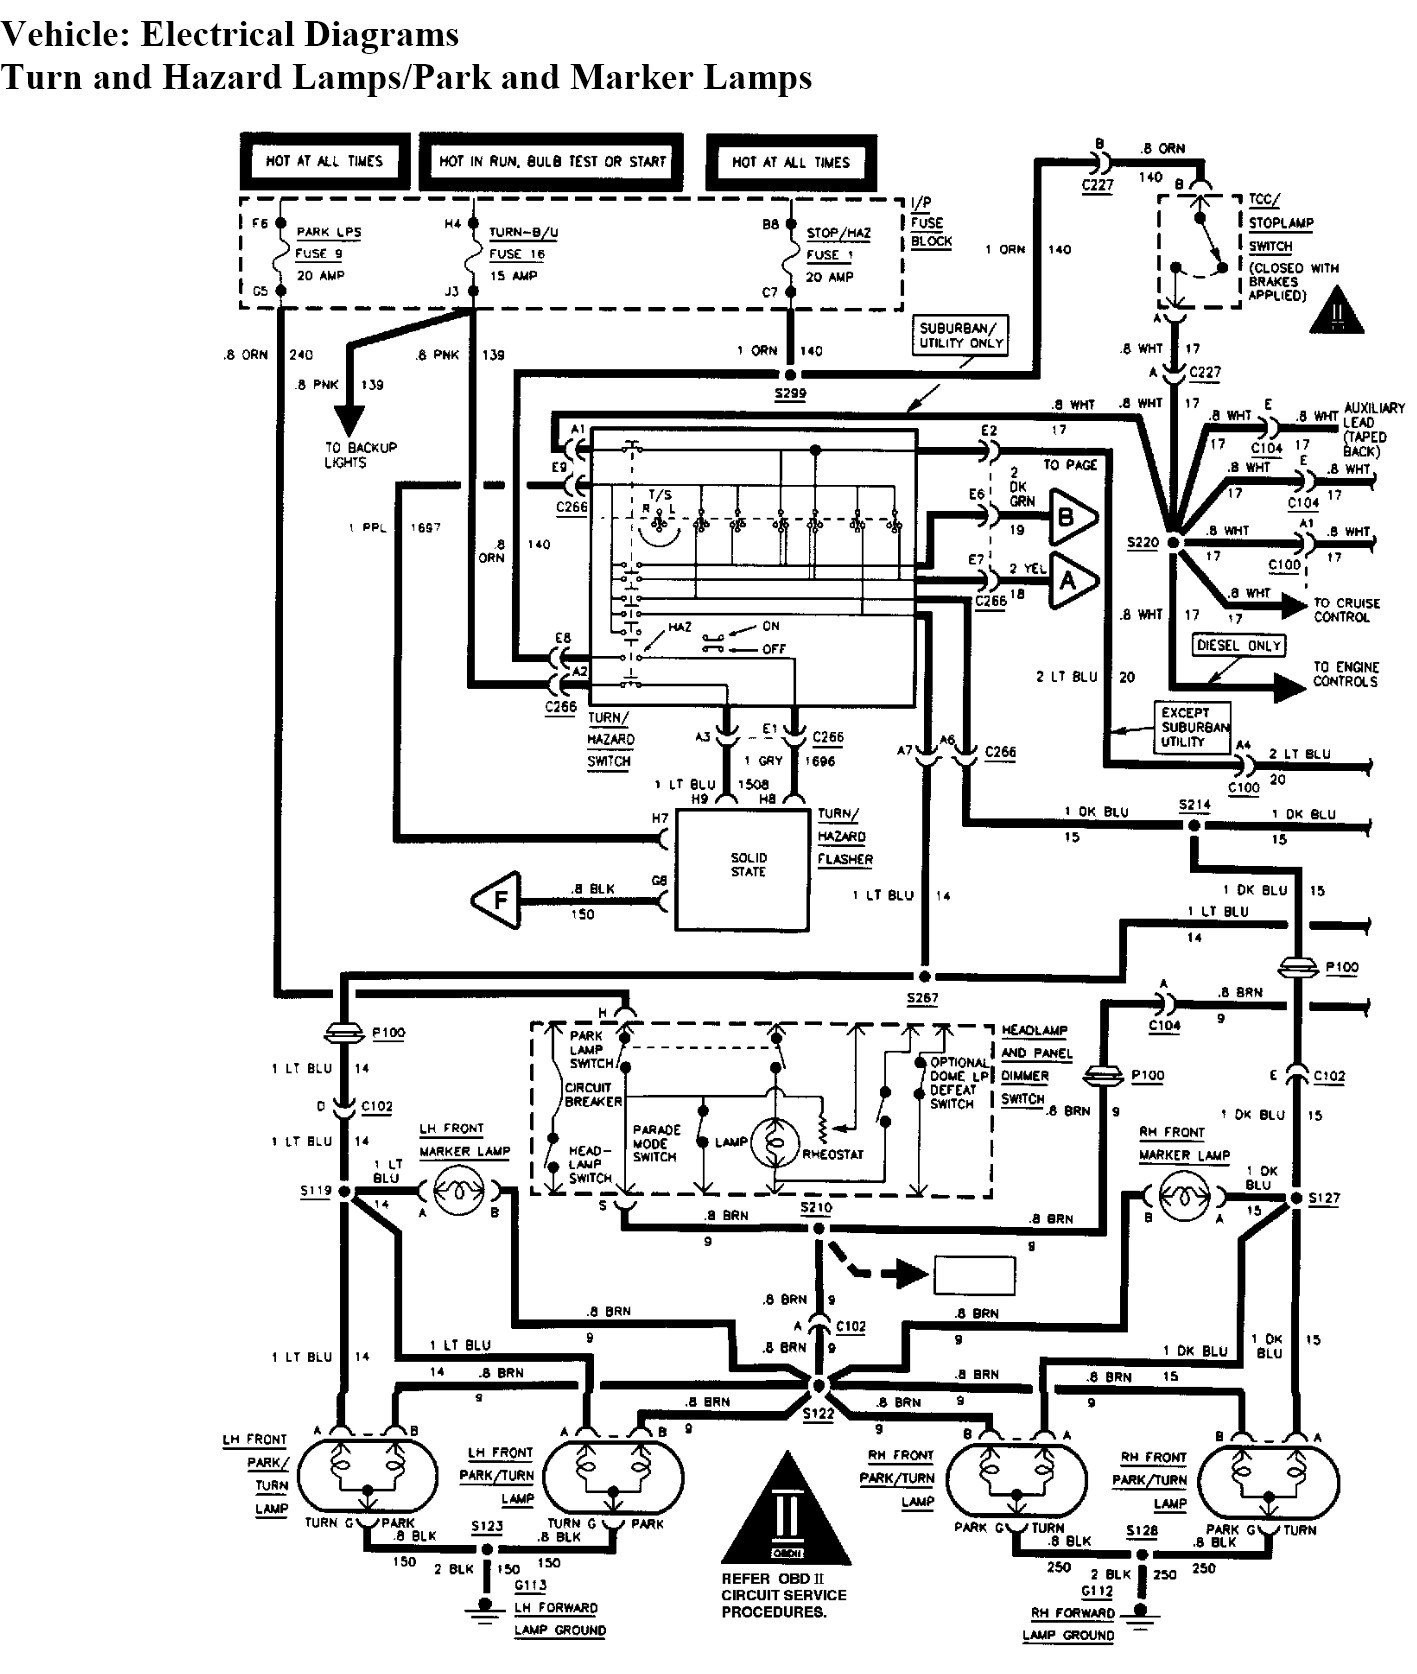 2004 Chevy Tahoe Parts Diagram Tail Light Enthusiast Wiring Diagrams \u2022 Tahoe  Suspension Diagram Tahoe Interior Parts Diagram